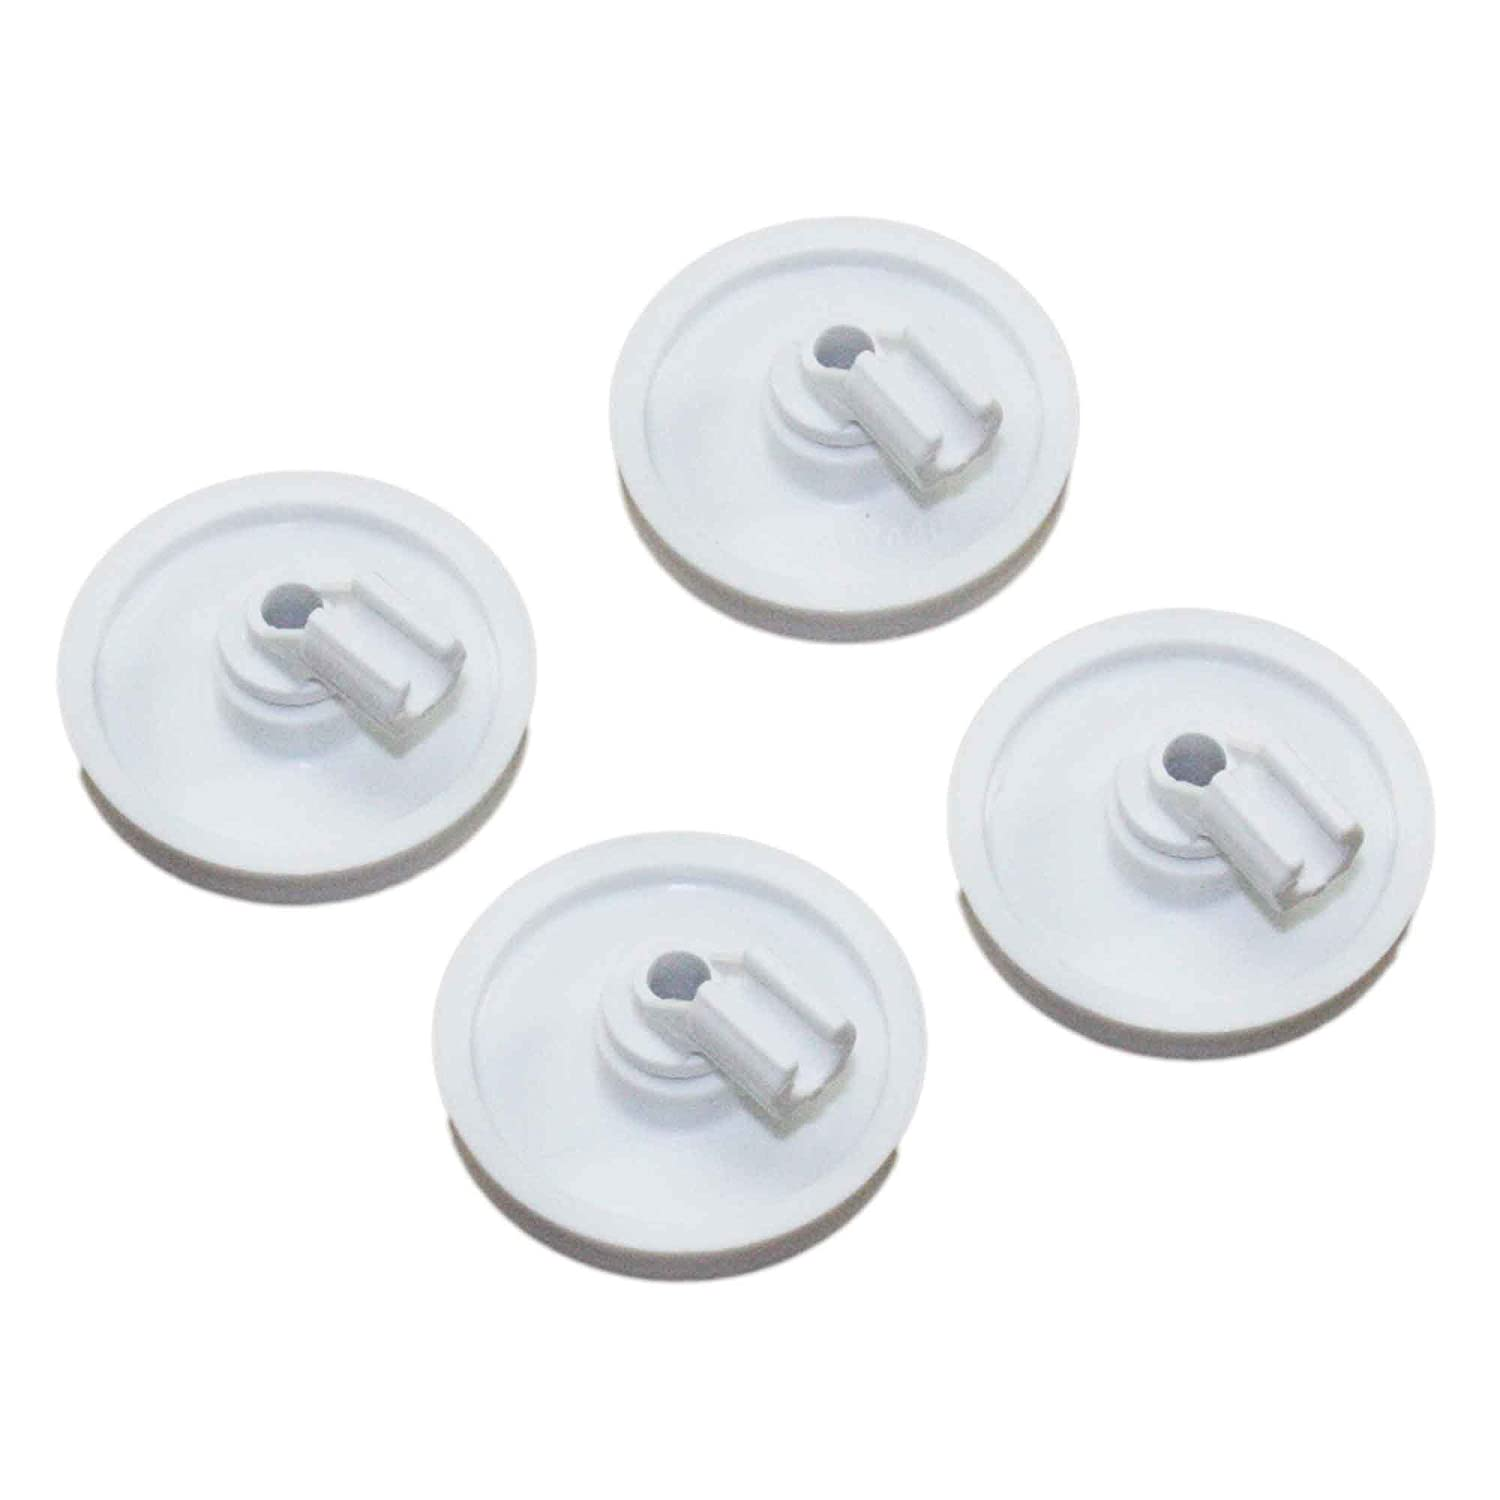 Supplying Demand 154174501 Dishwasher 4 Pack Of Wheels Fits Frigidaire & Kenmore